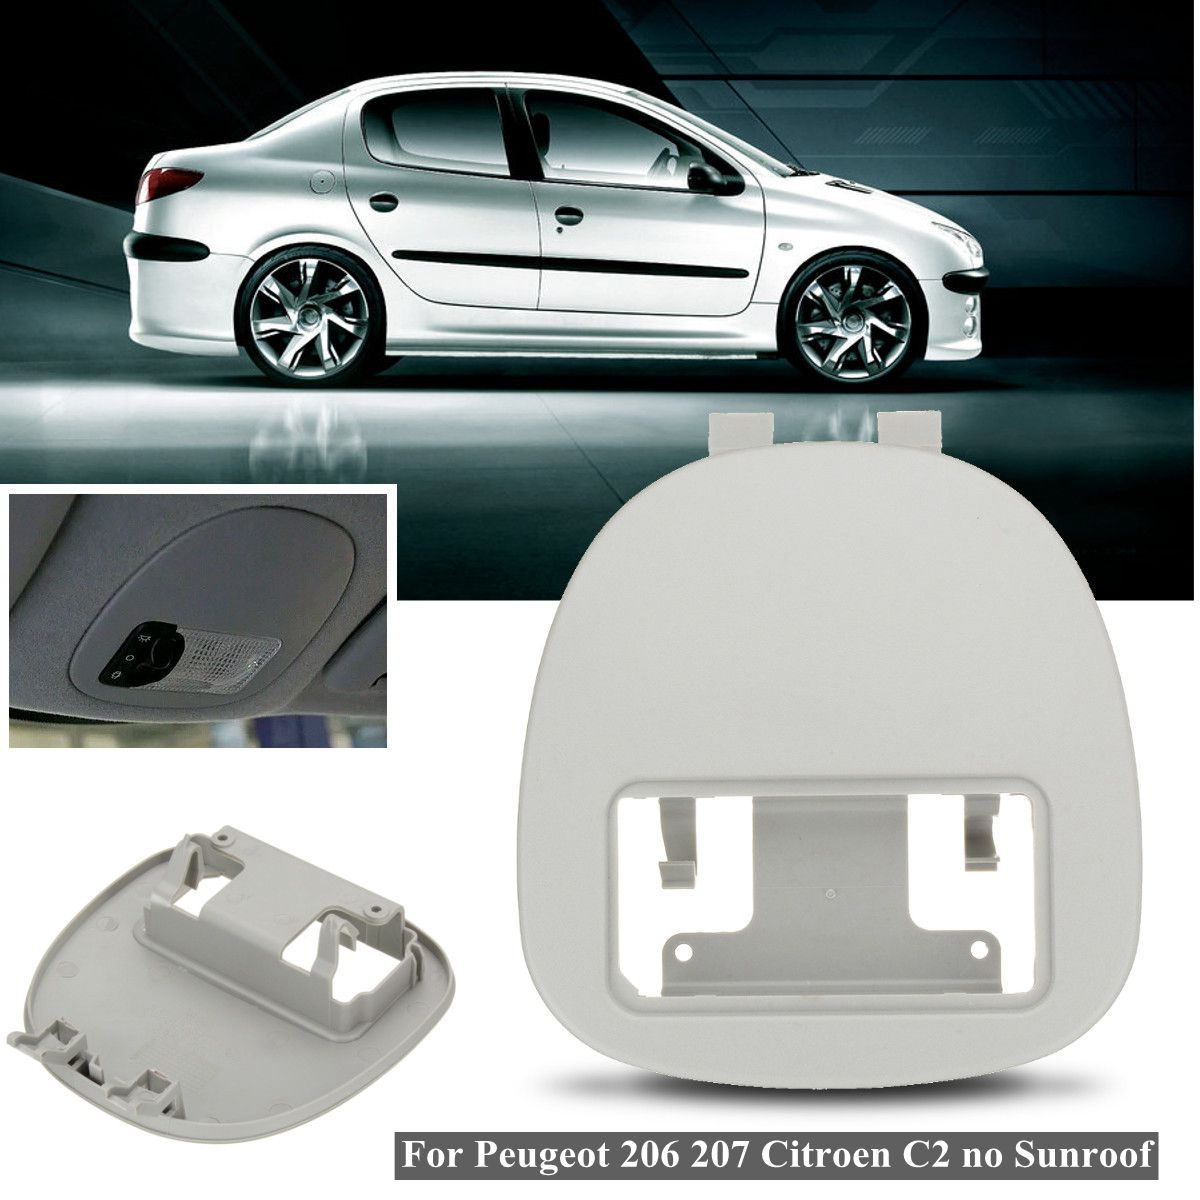 Car Front Interior Dome Reading Light Lamp Shield Panel Cover for Peugeot 206 207 for Citroen C2 9625049077Car Front Interior Dome Reading Light Lamp Shield Panel Cover for Peugeot 206 207 for Citroen C2 9625049077